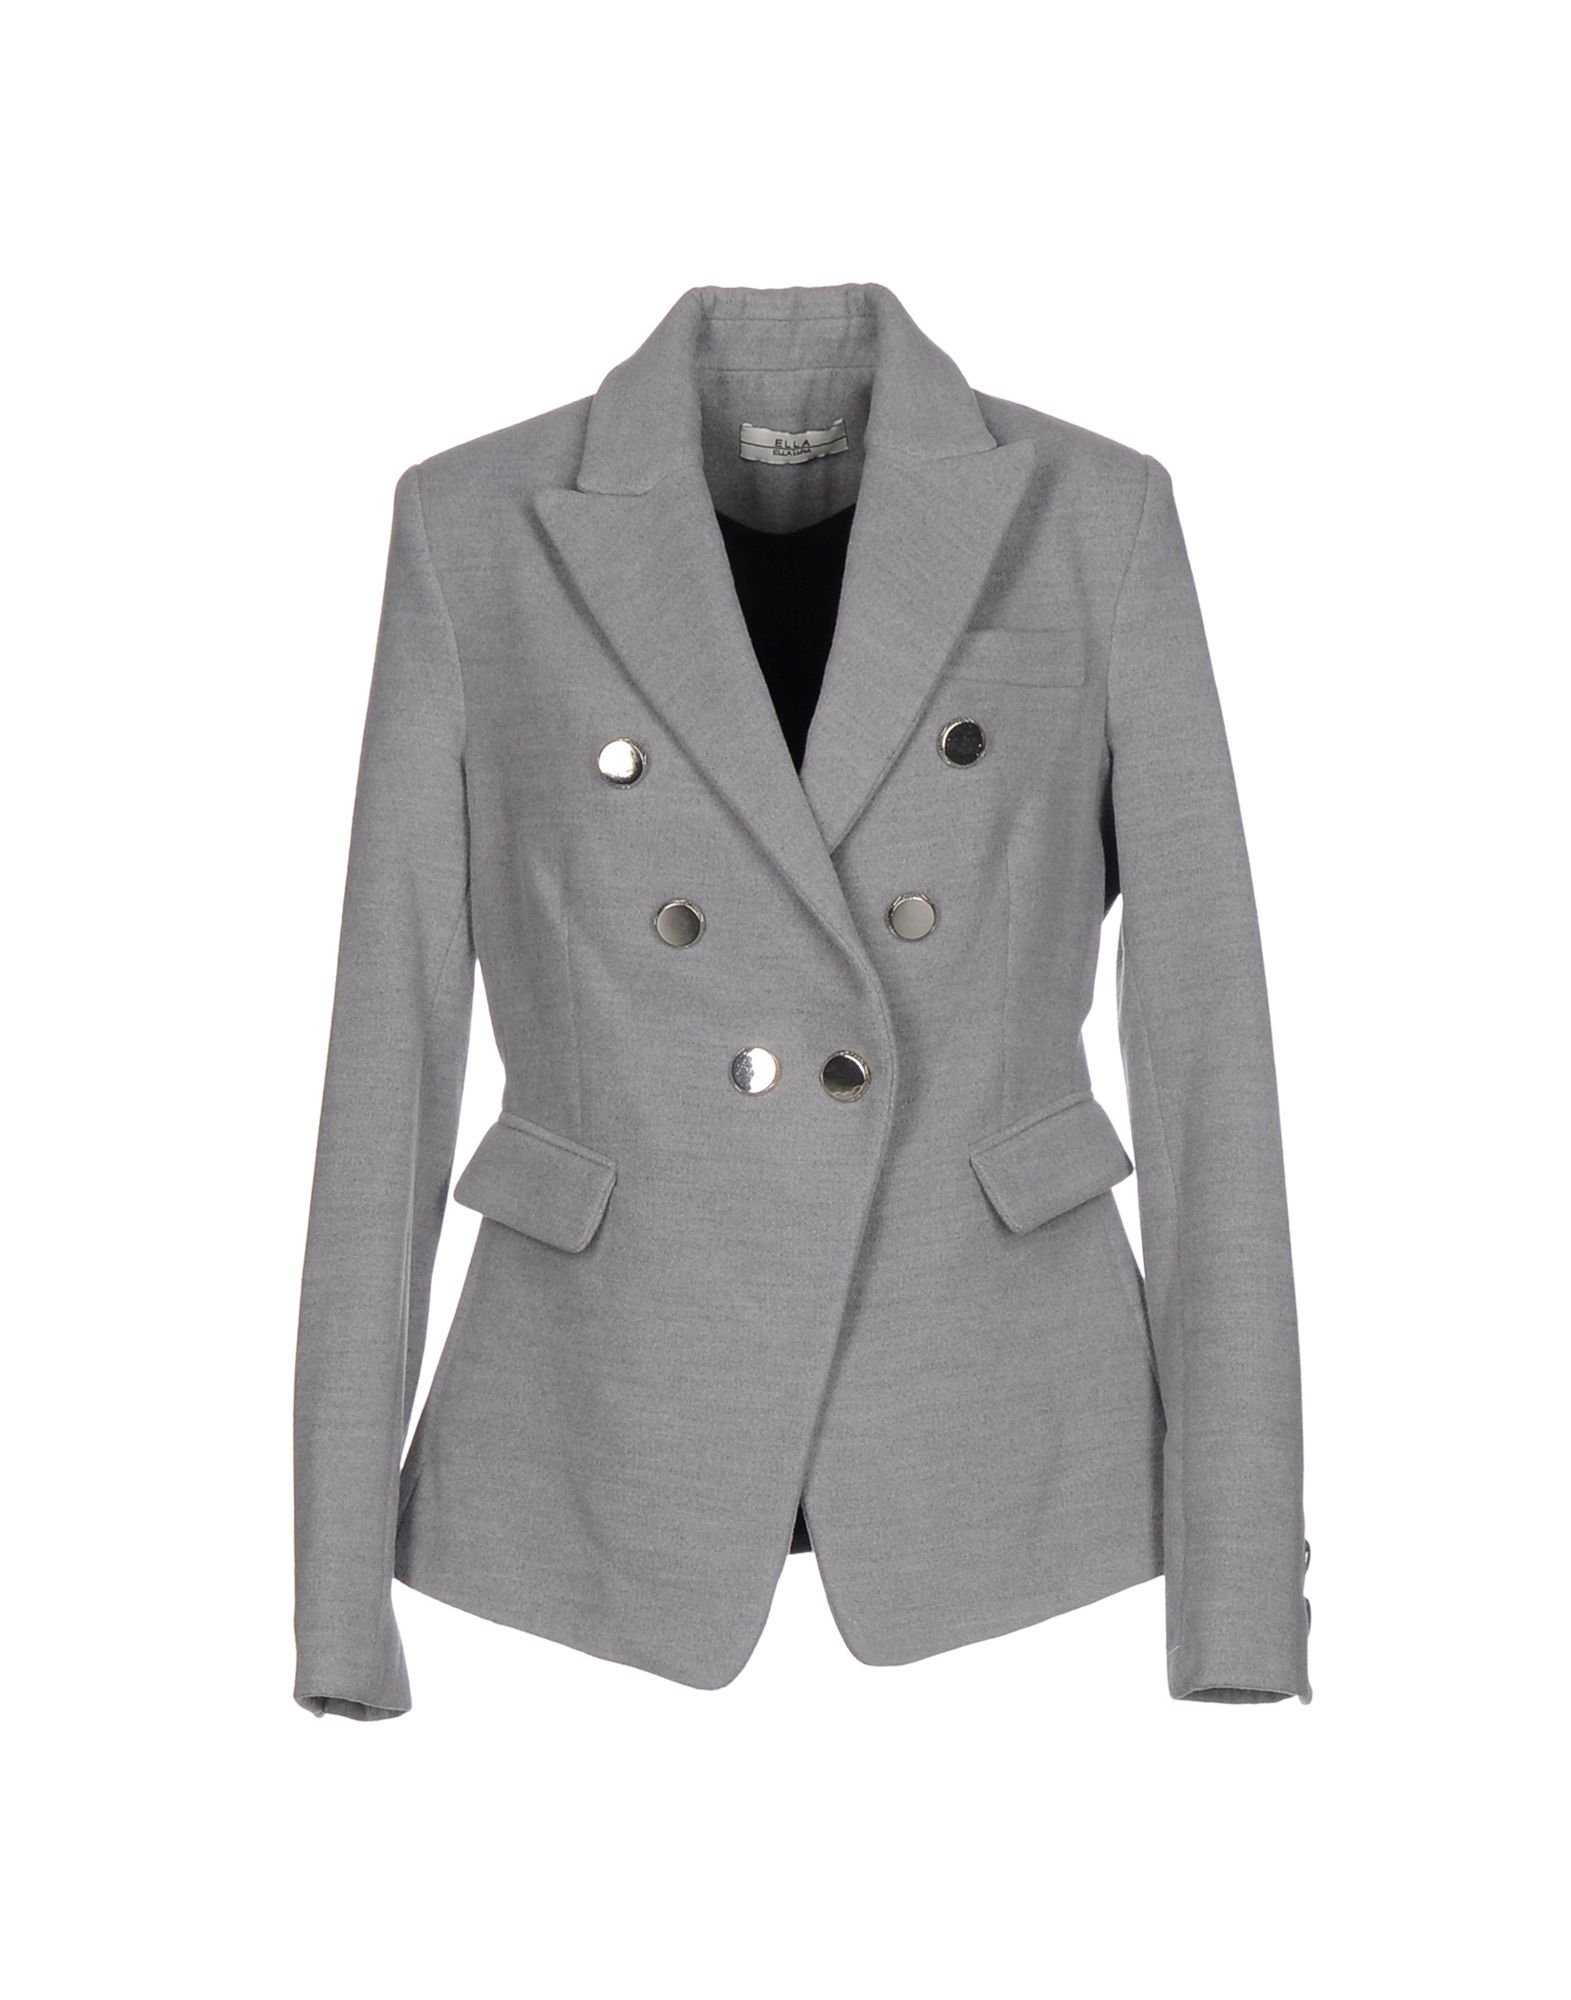 Fashionable For Sale SUITS AND JACKETS - Blazers Ella Luna Buy Cheap Sneakernews Cheap Sale Fake Outlet New Styles I0uOiGOM